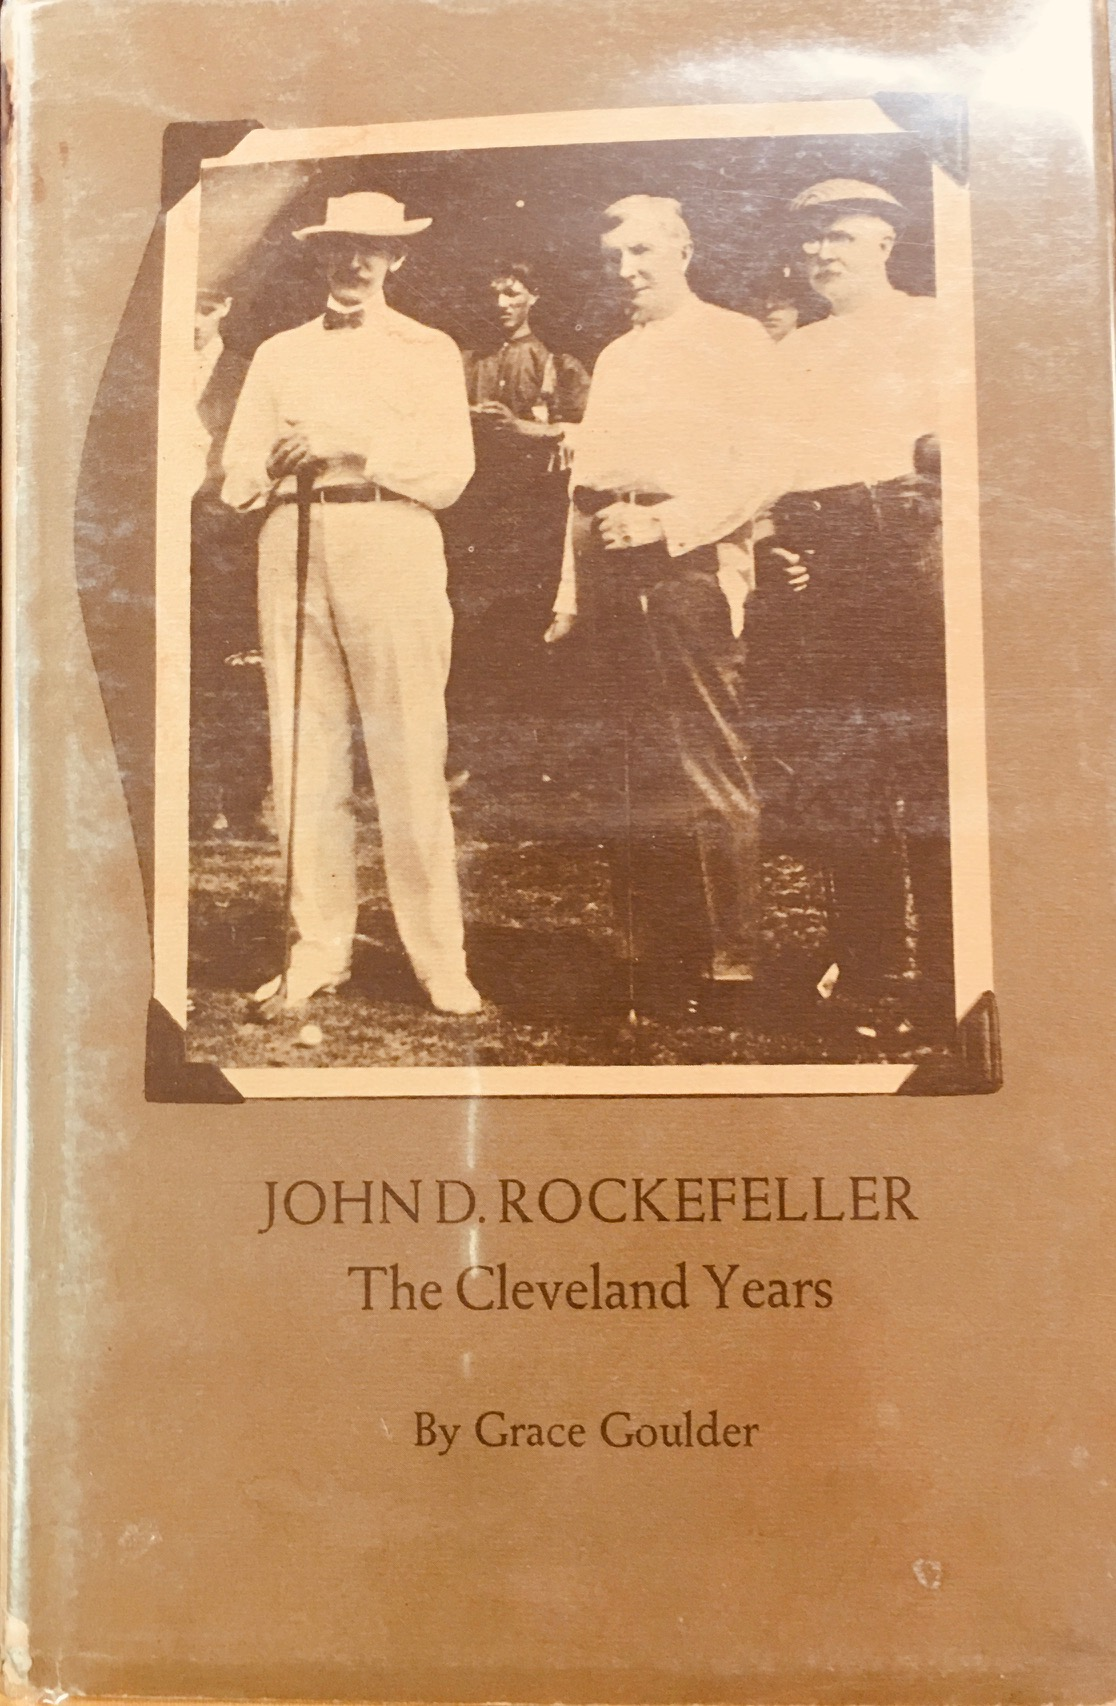 Image for John D. Rockefeller: The Cleveland Years (Western Reserve Historical Society publication No. 126)